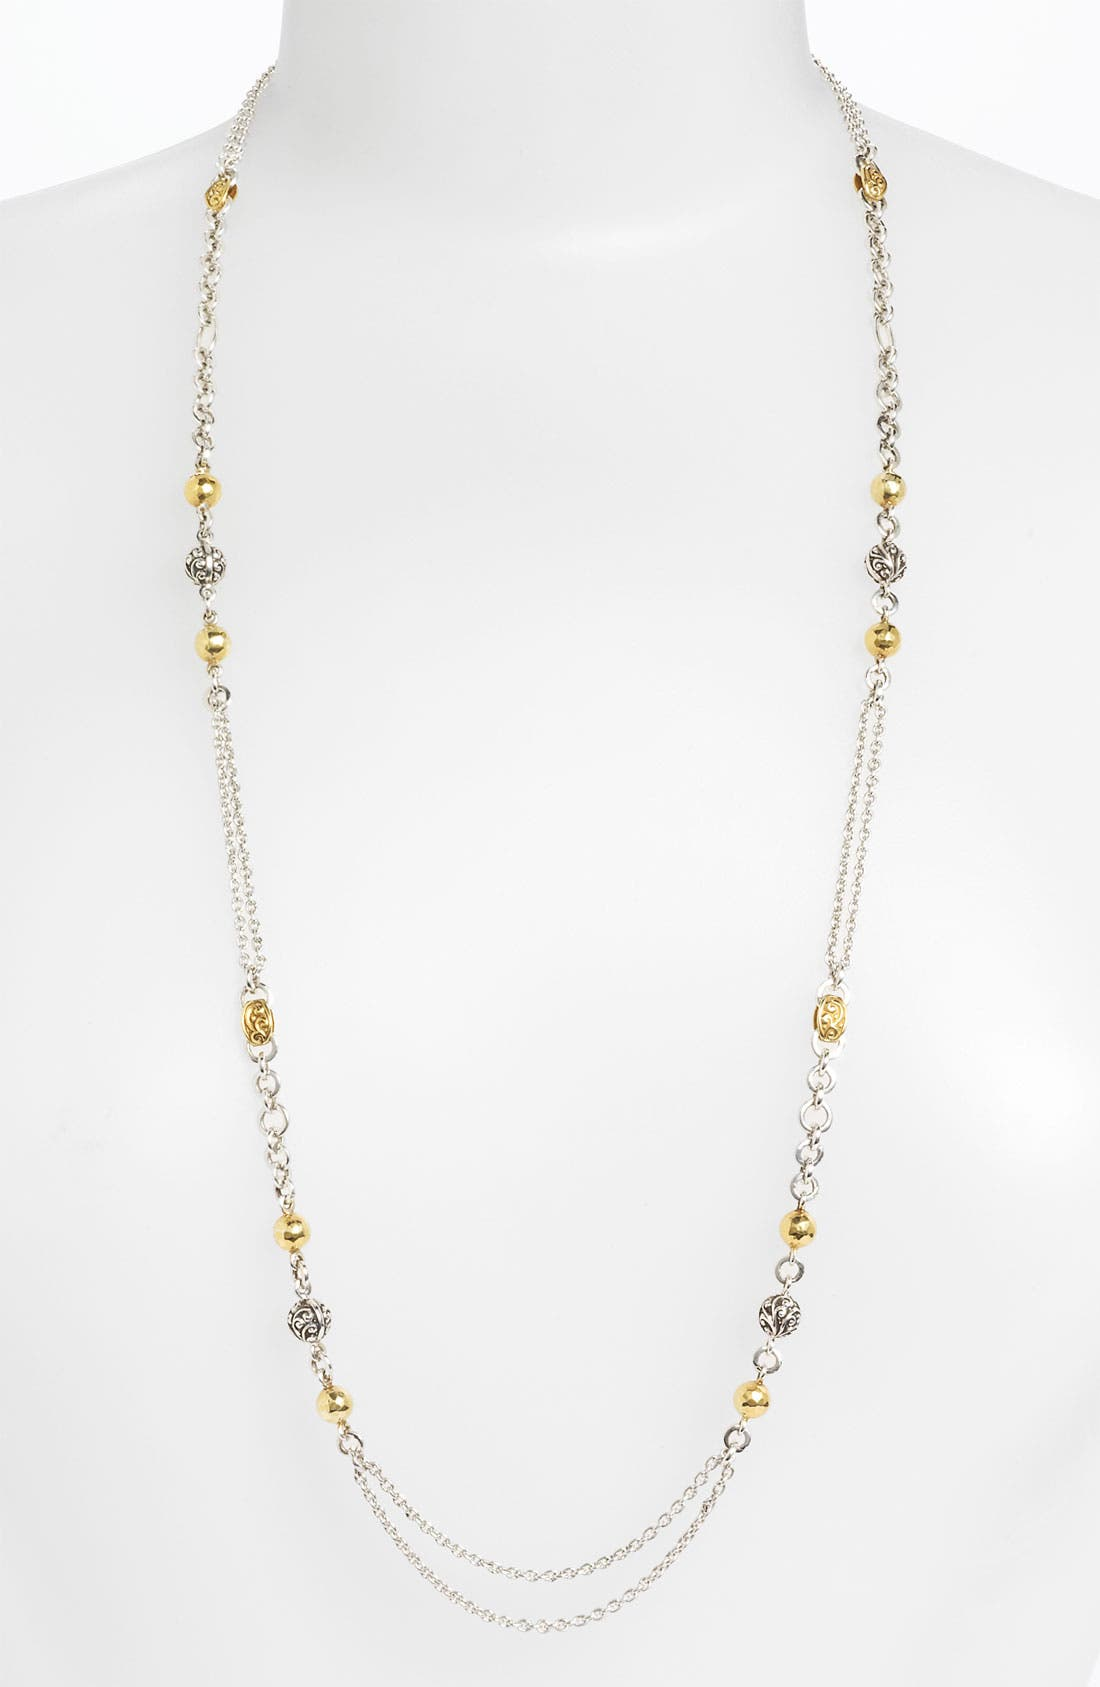 Alternate Image 1 Selected - Lois Hill 'Repousse' Two Tone Long Strand Necklace